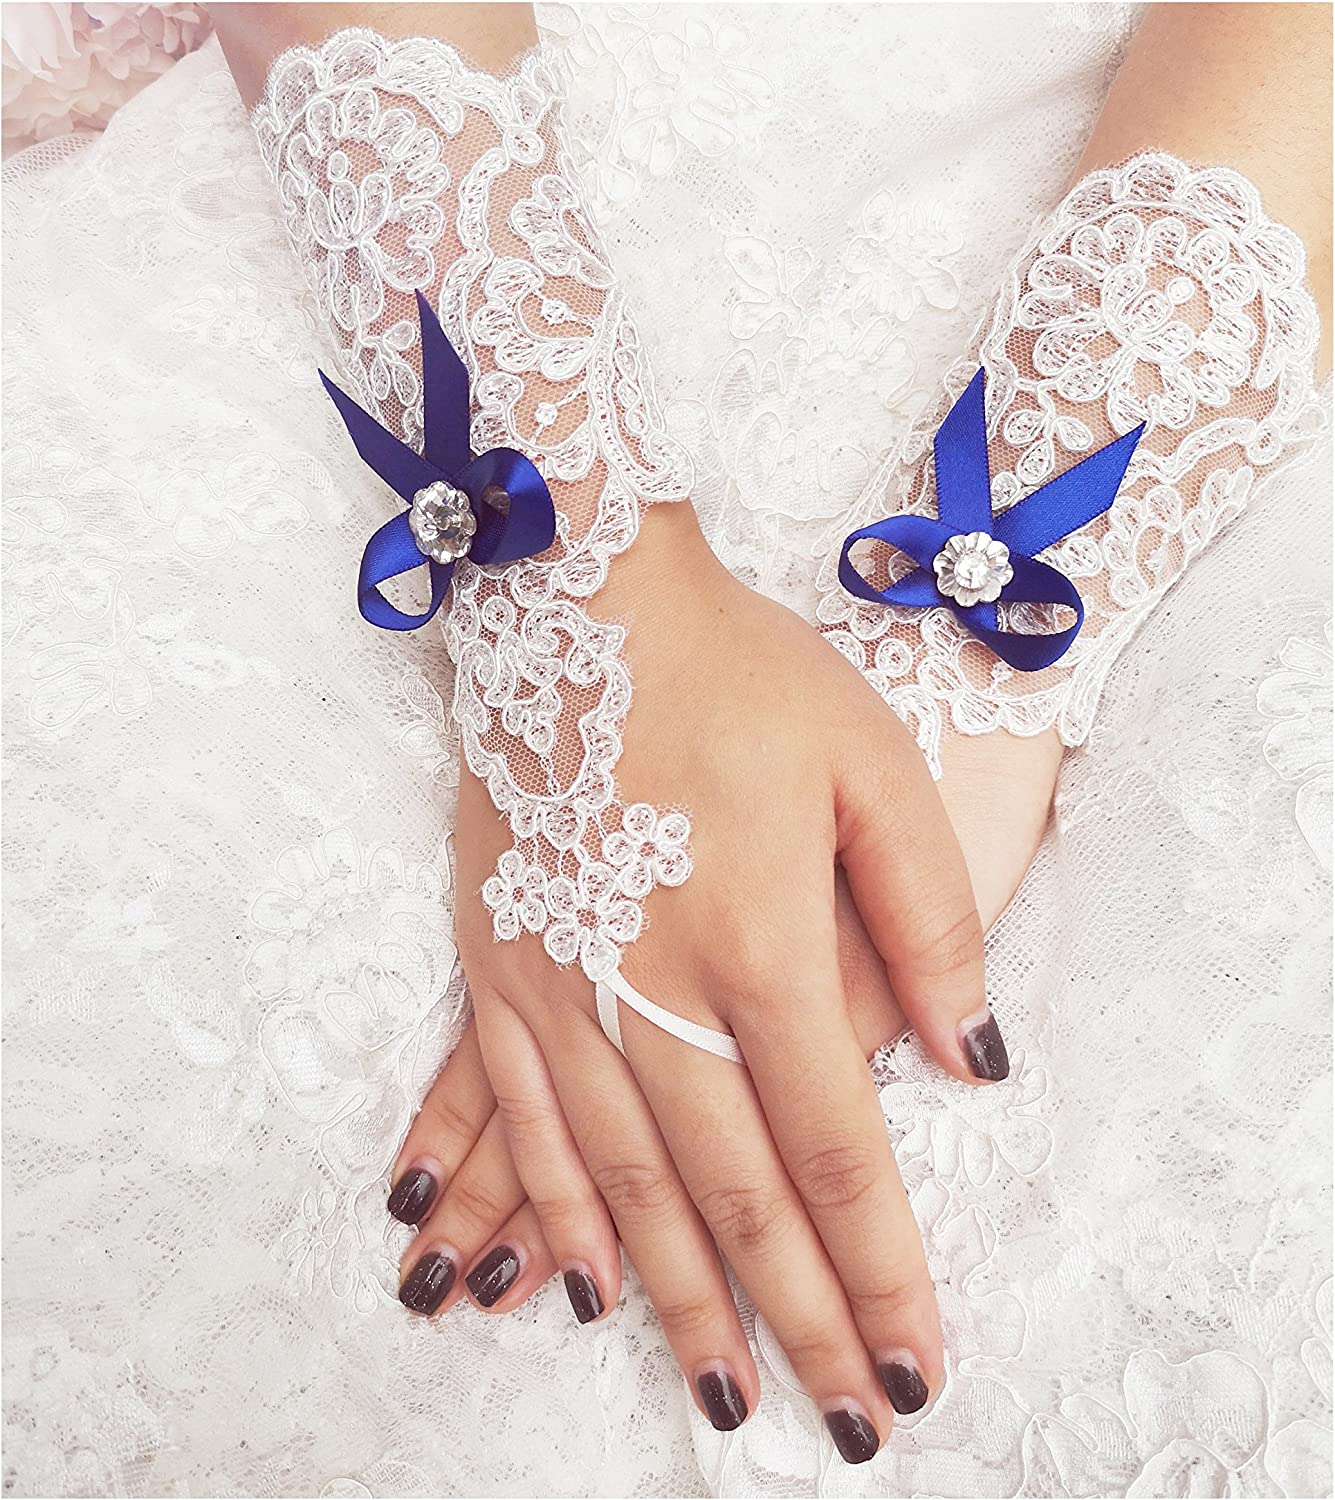 YuRongsxt Lace Bridal Gloves Bow Wedding Gloves Rhinestone Gloves A15